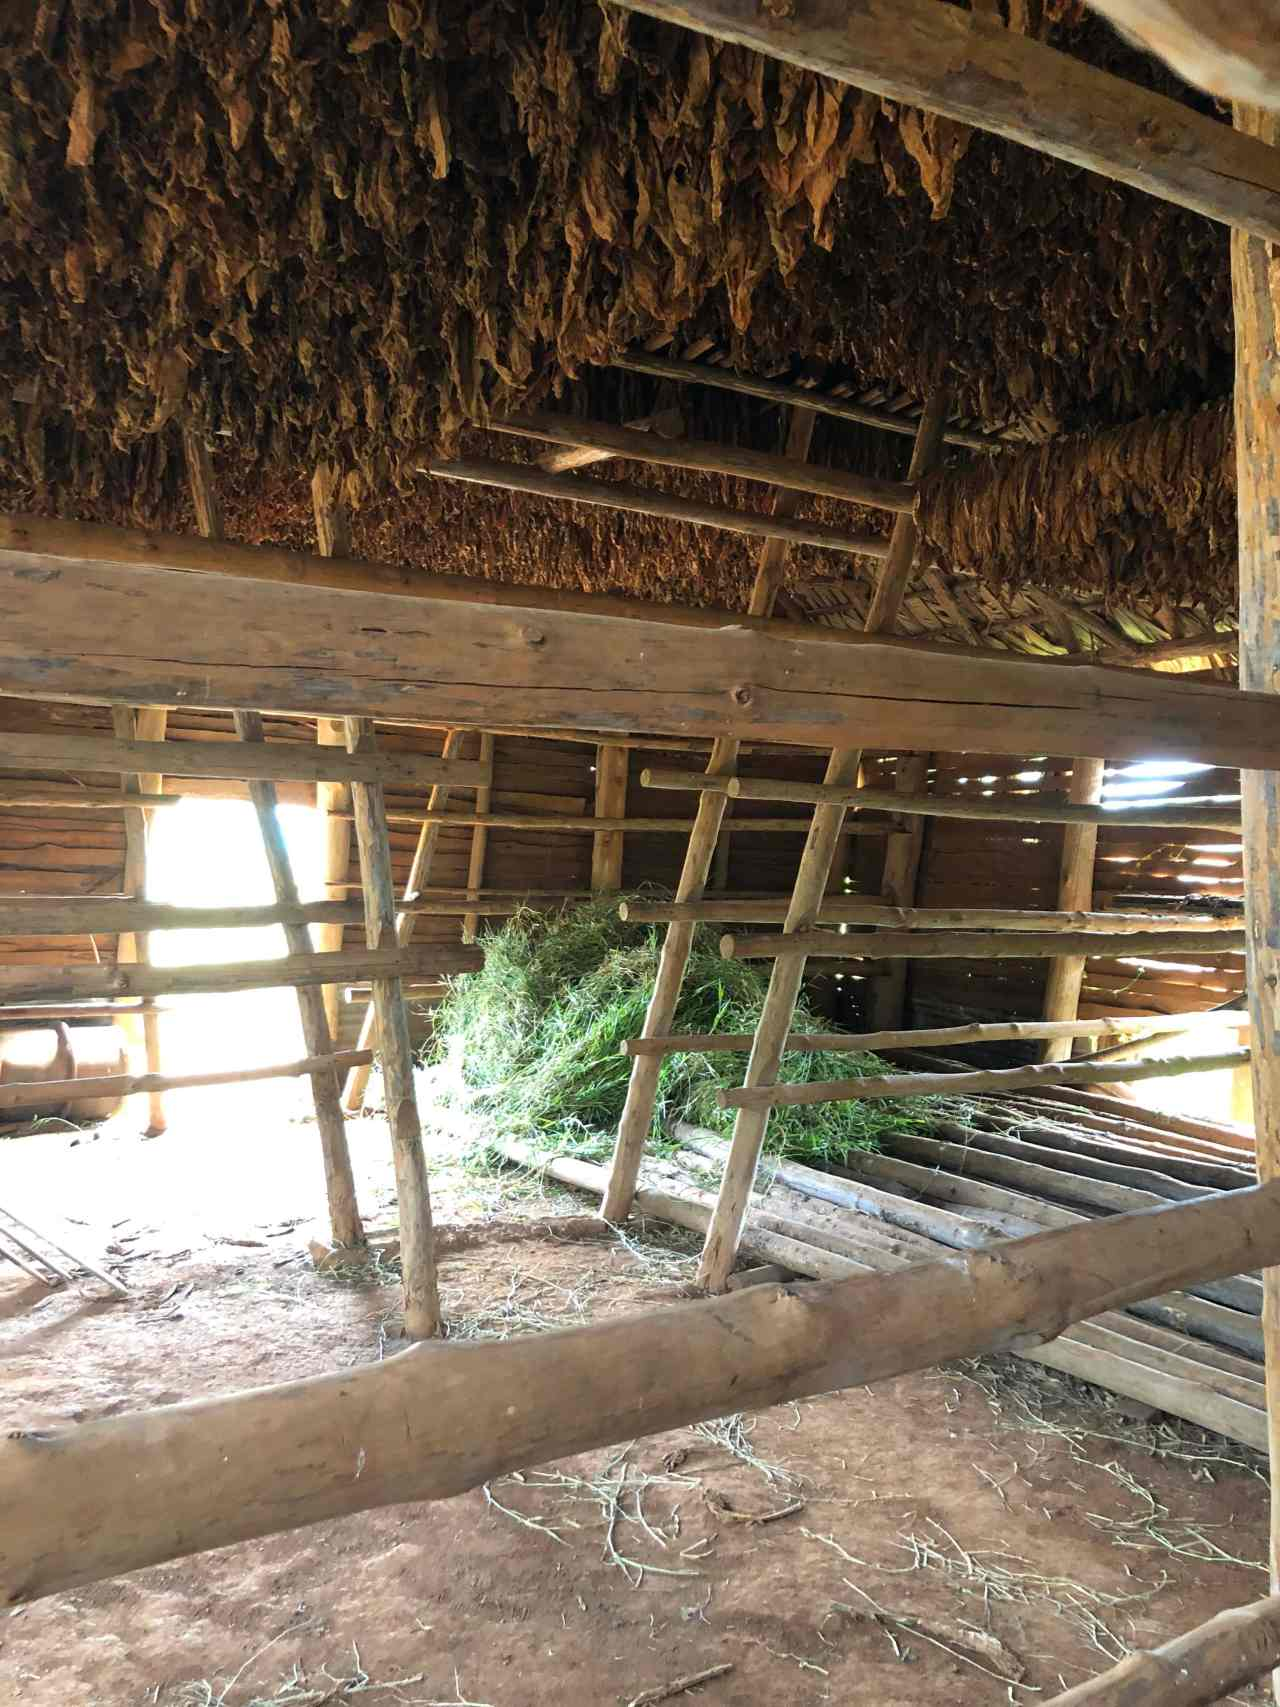 Inside a tobacco drying hut